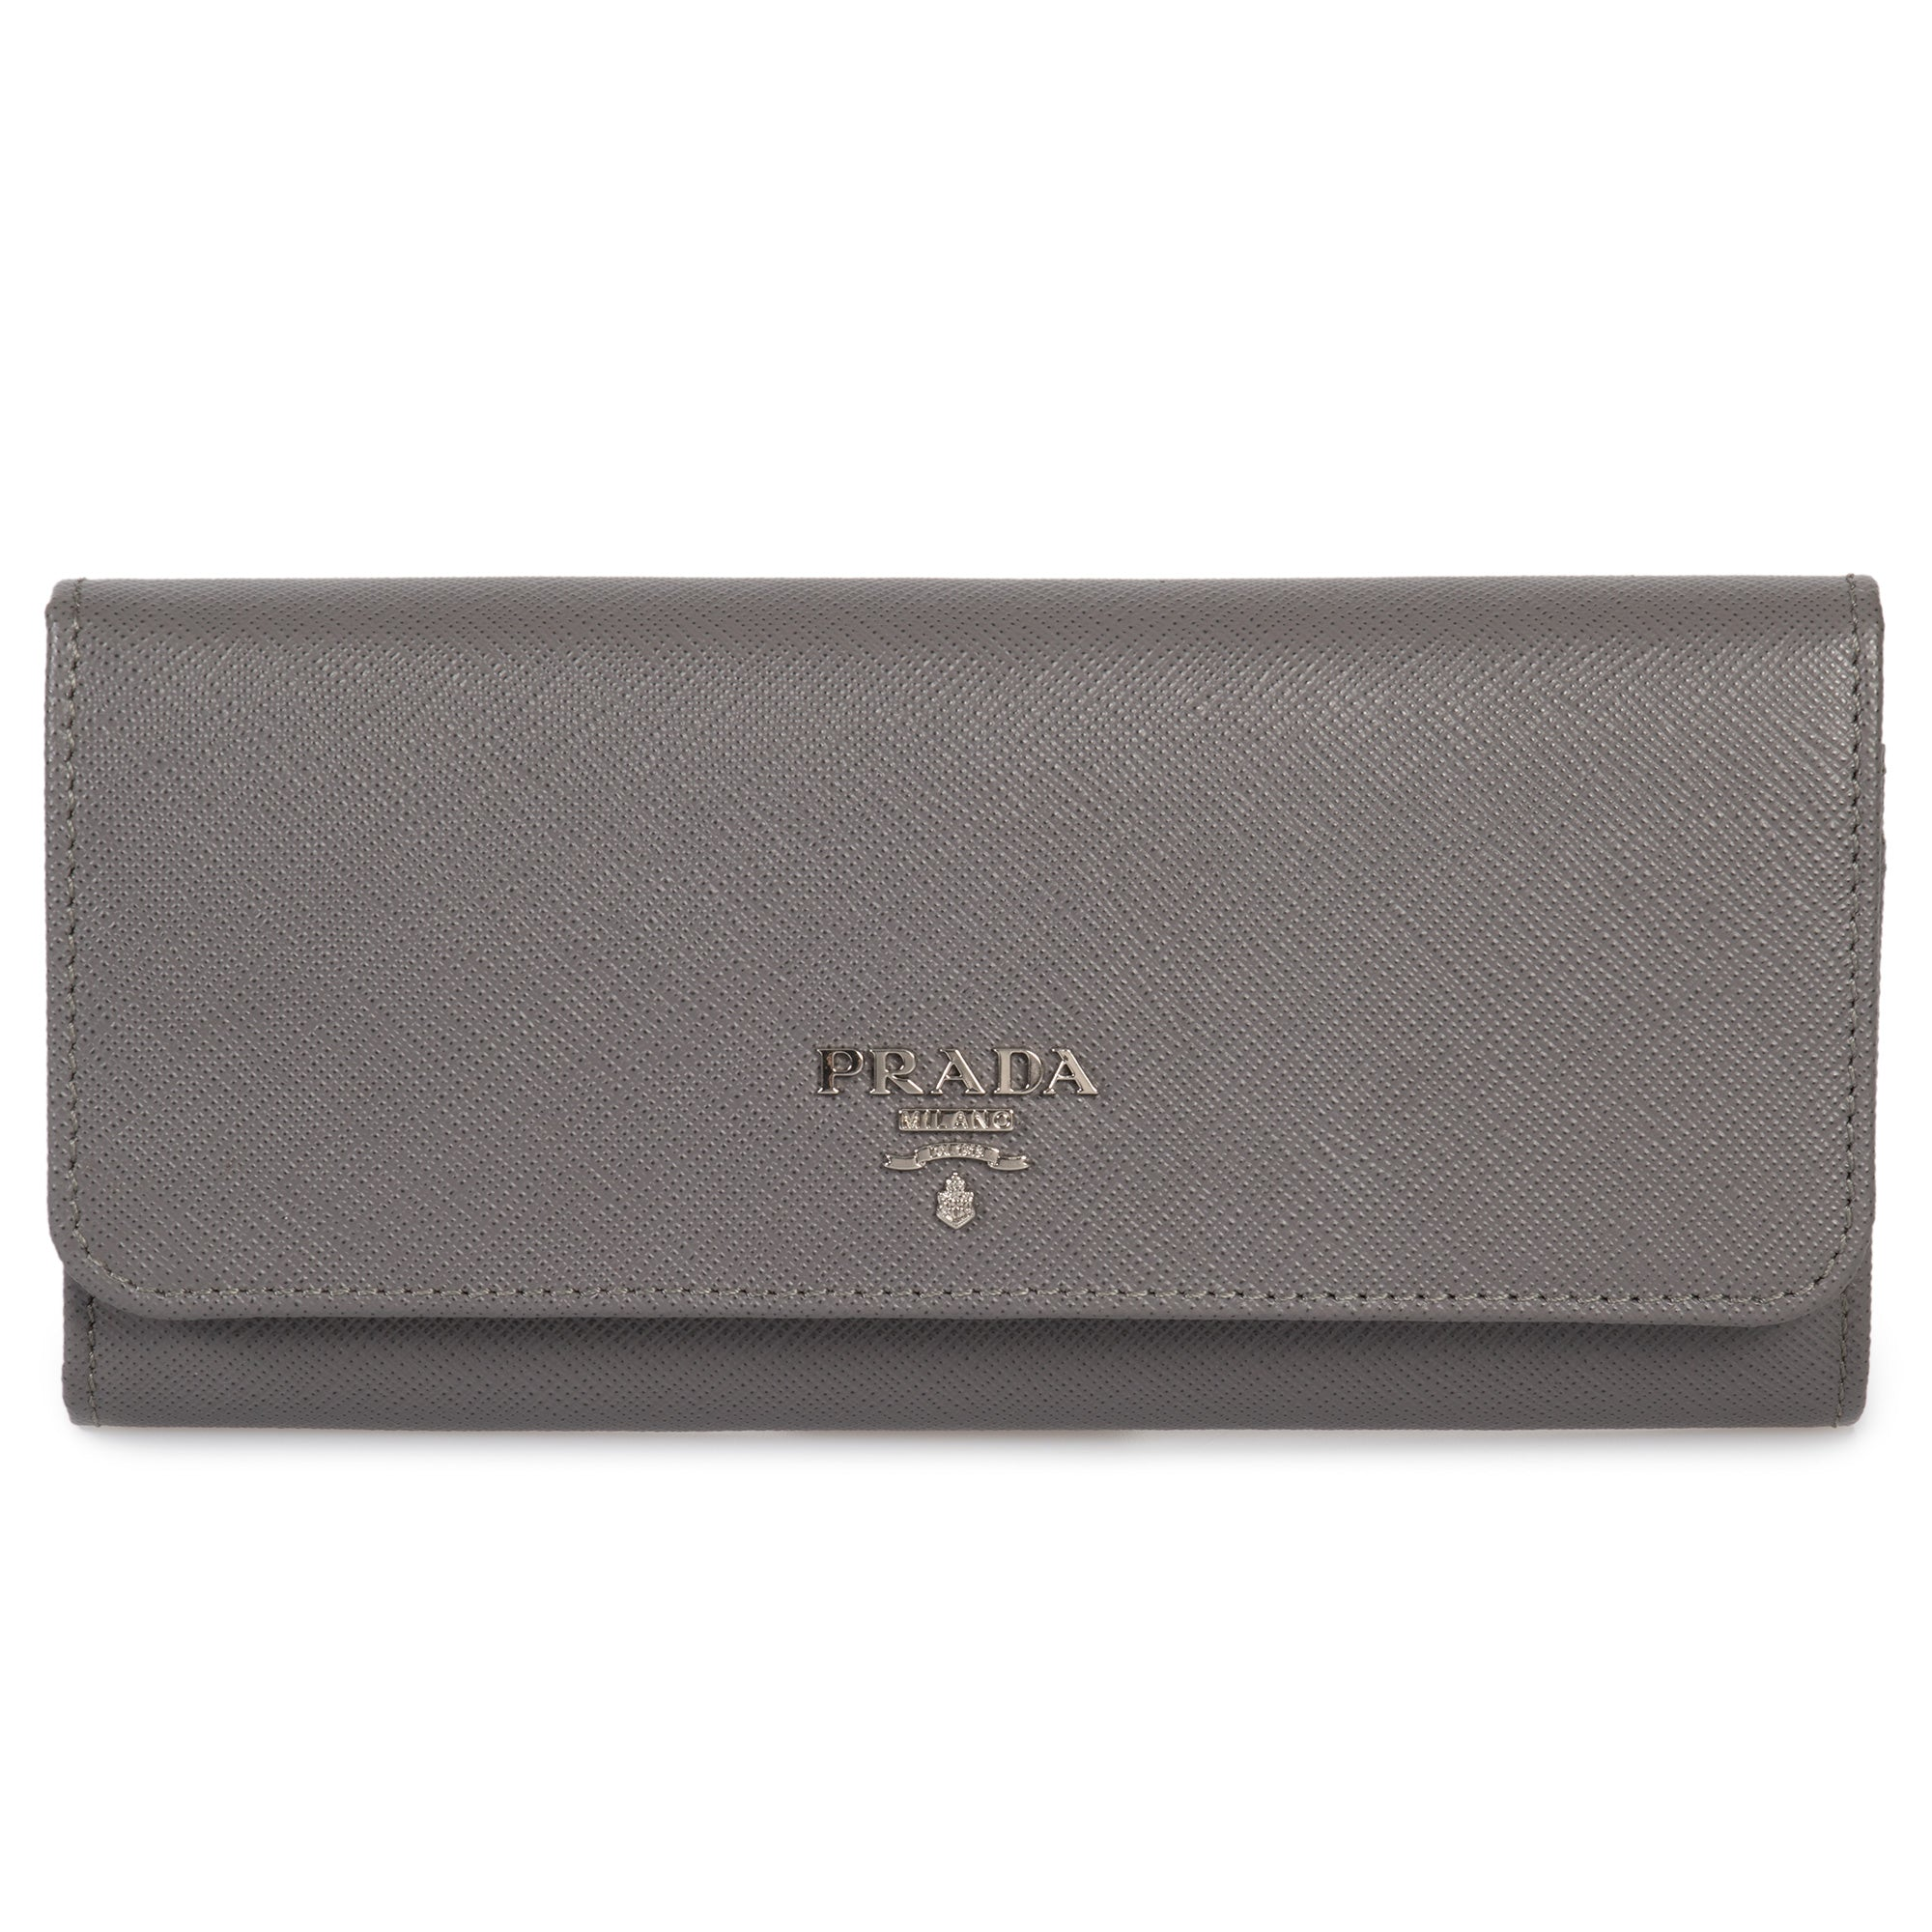 Prada Marble Saffiano Leather Flap Wallet 1MH132 QWA F0K44